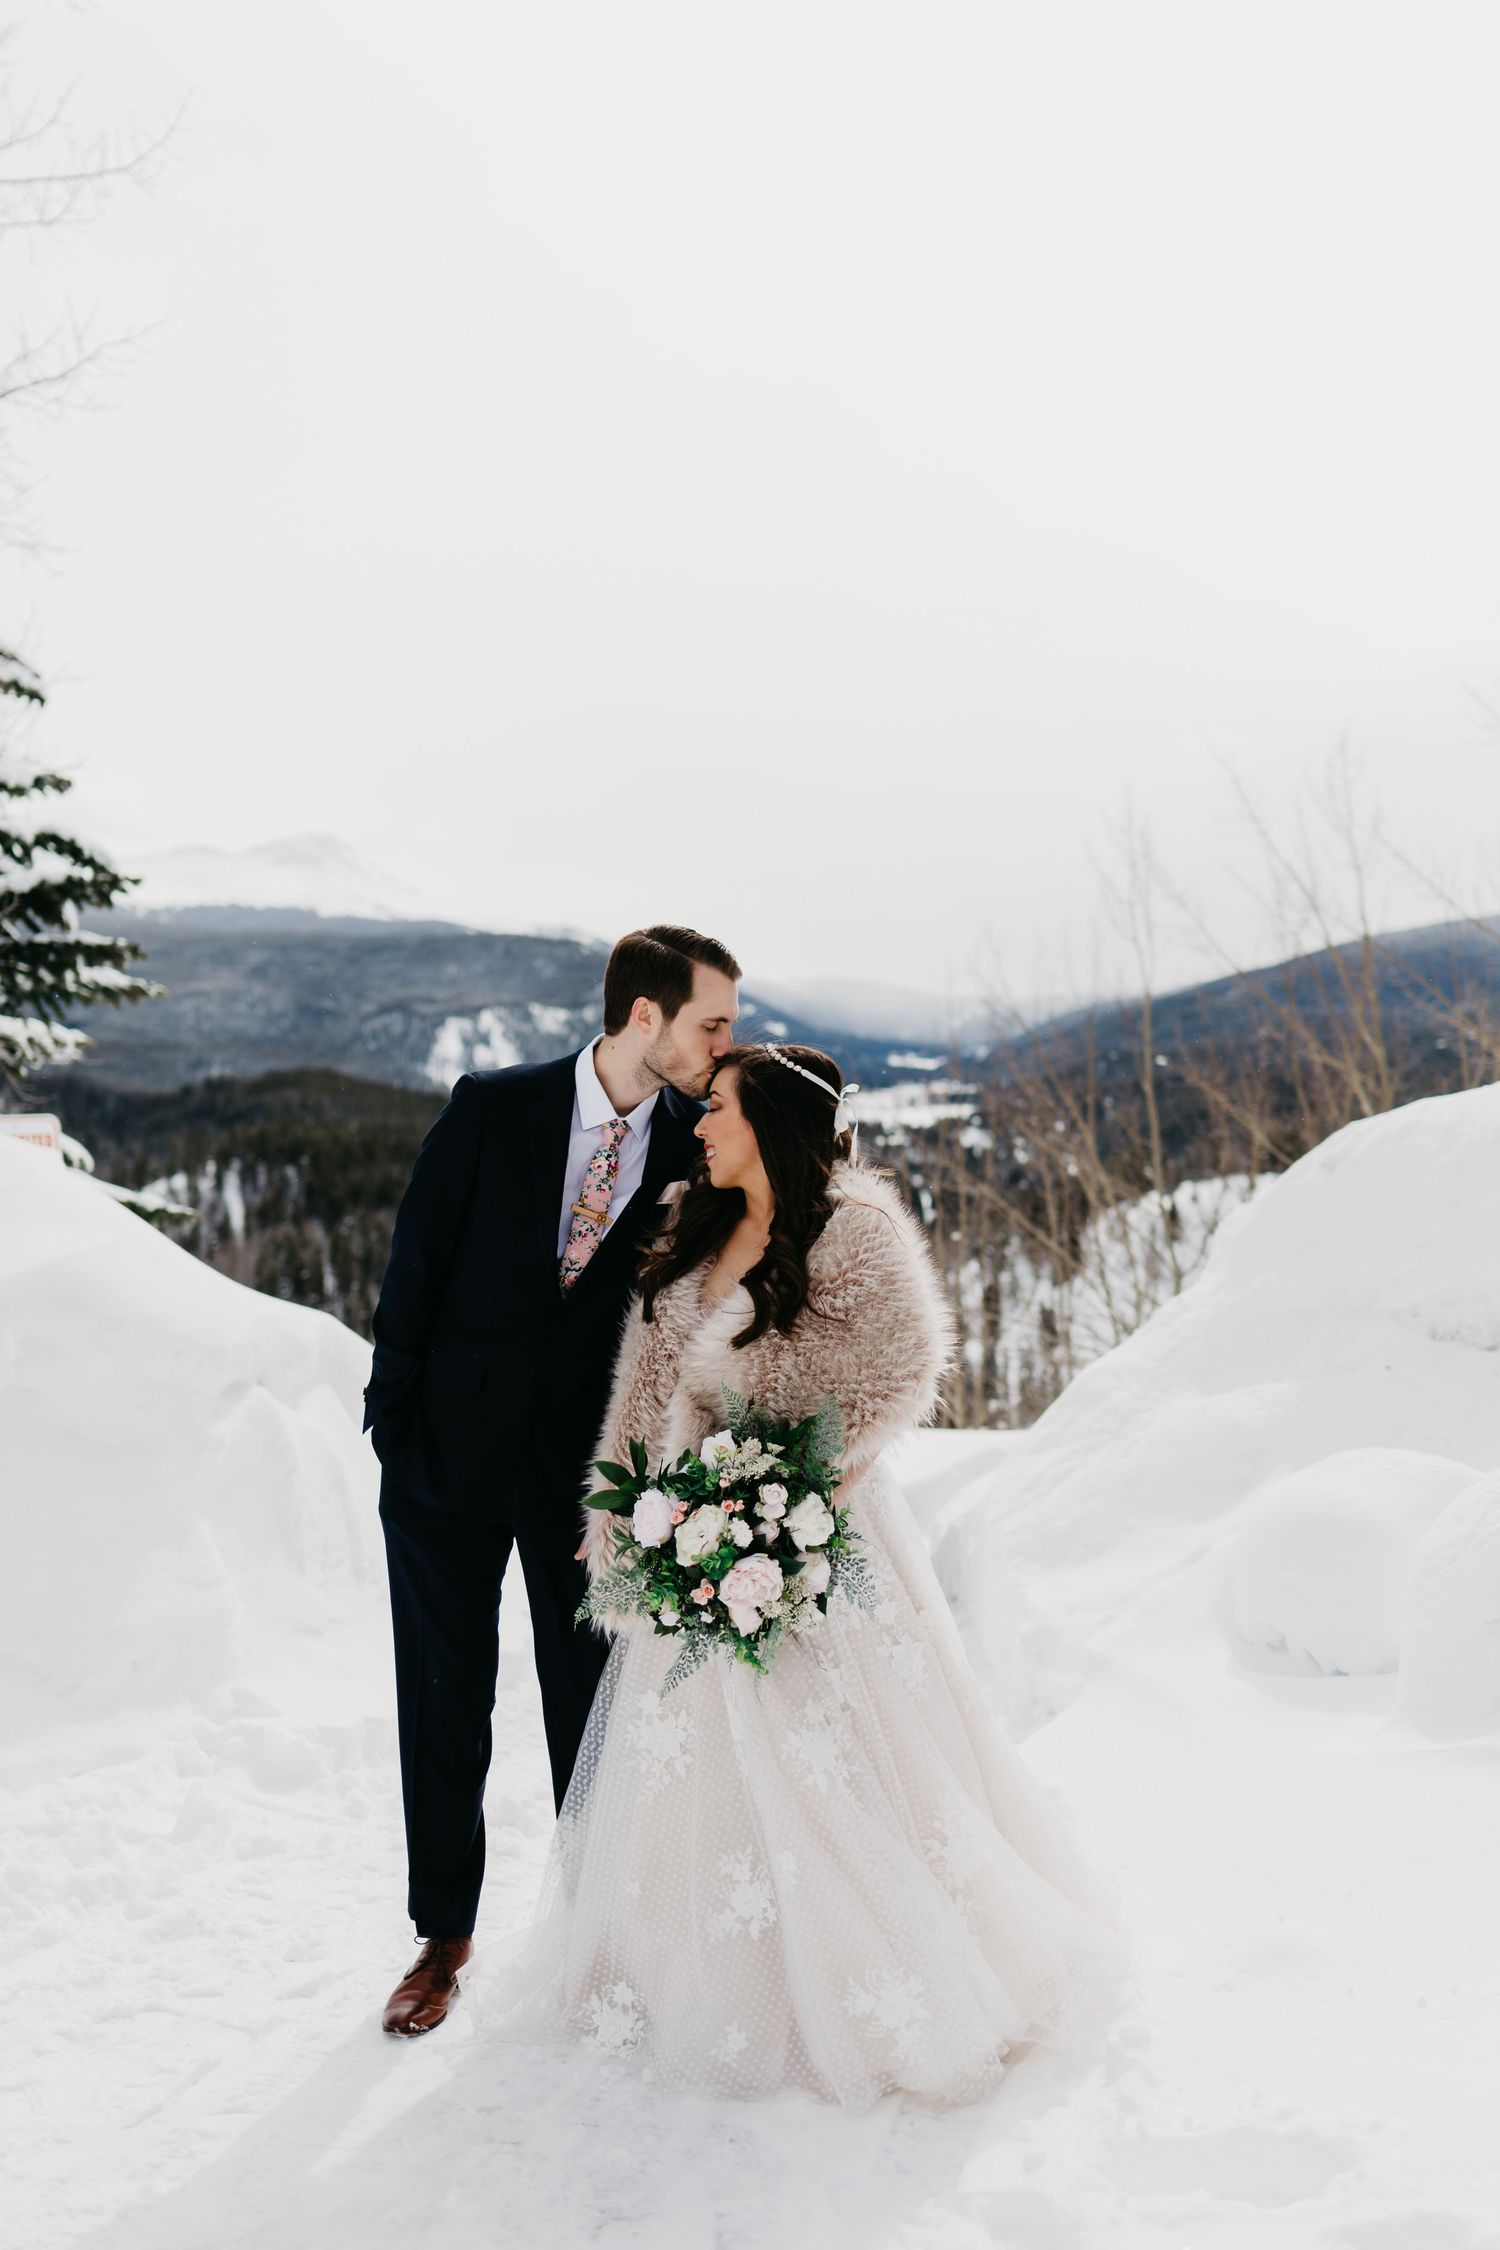 winter wedding inspiration, mountains, colorado, elopement, small wedding, snow, portraits, best co photographer